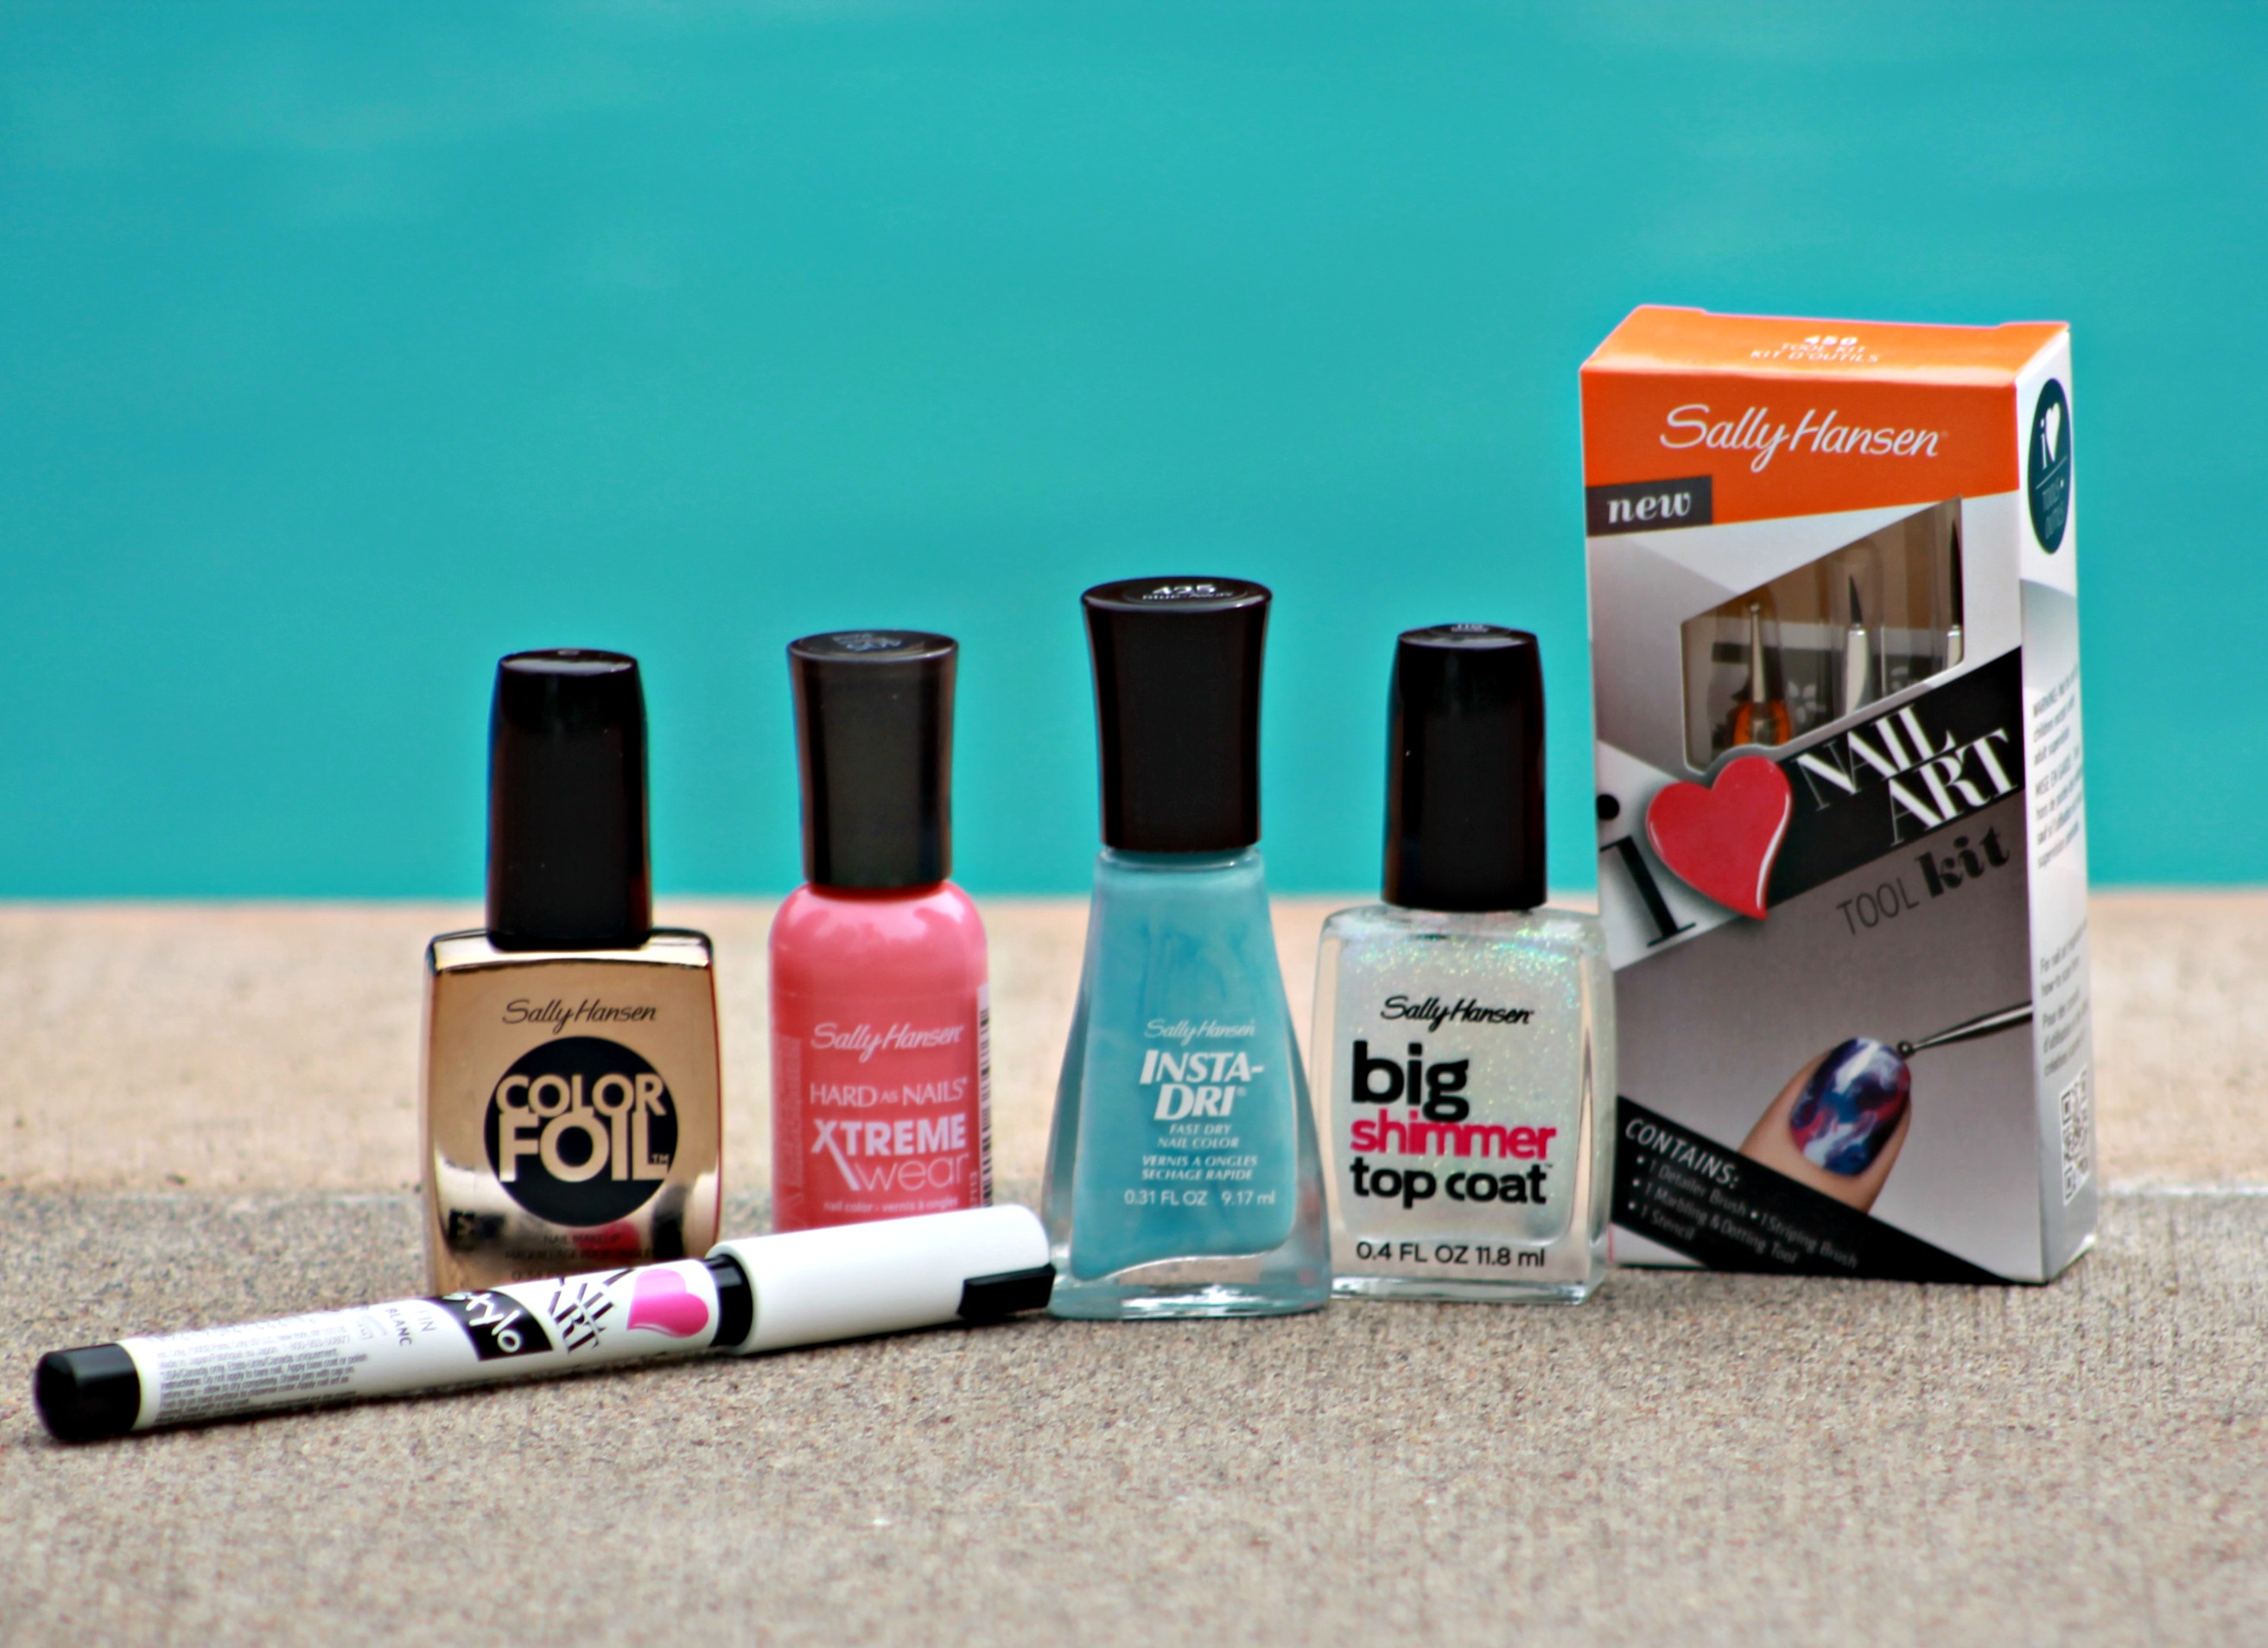 Sally Hansen Products for #MySummerLook